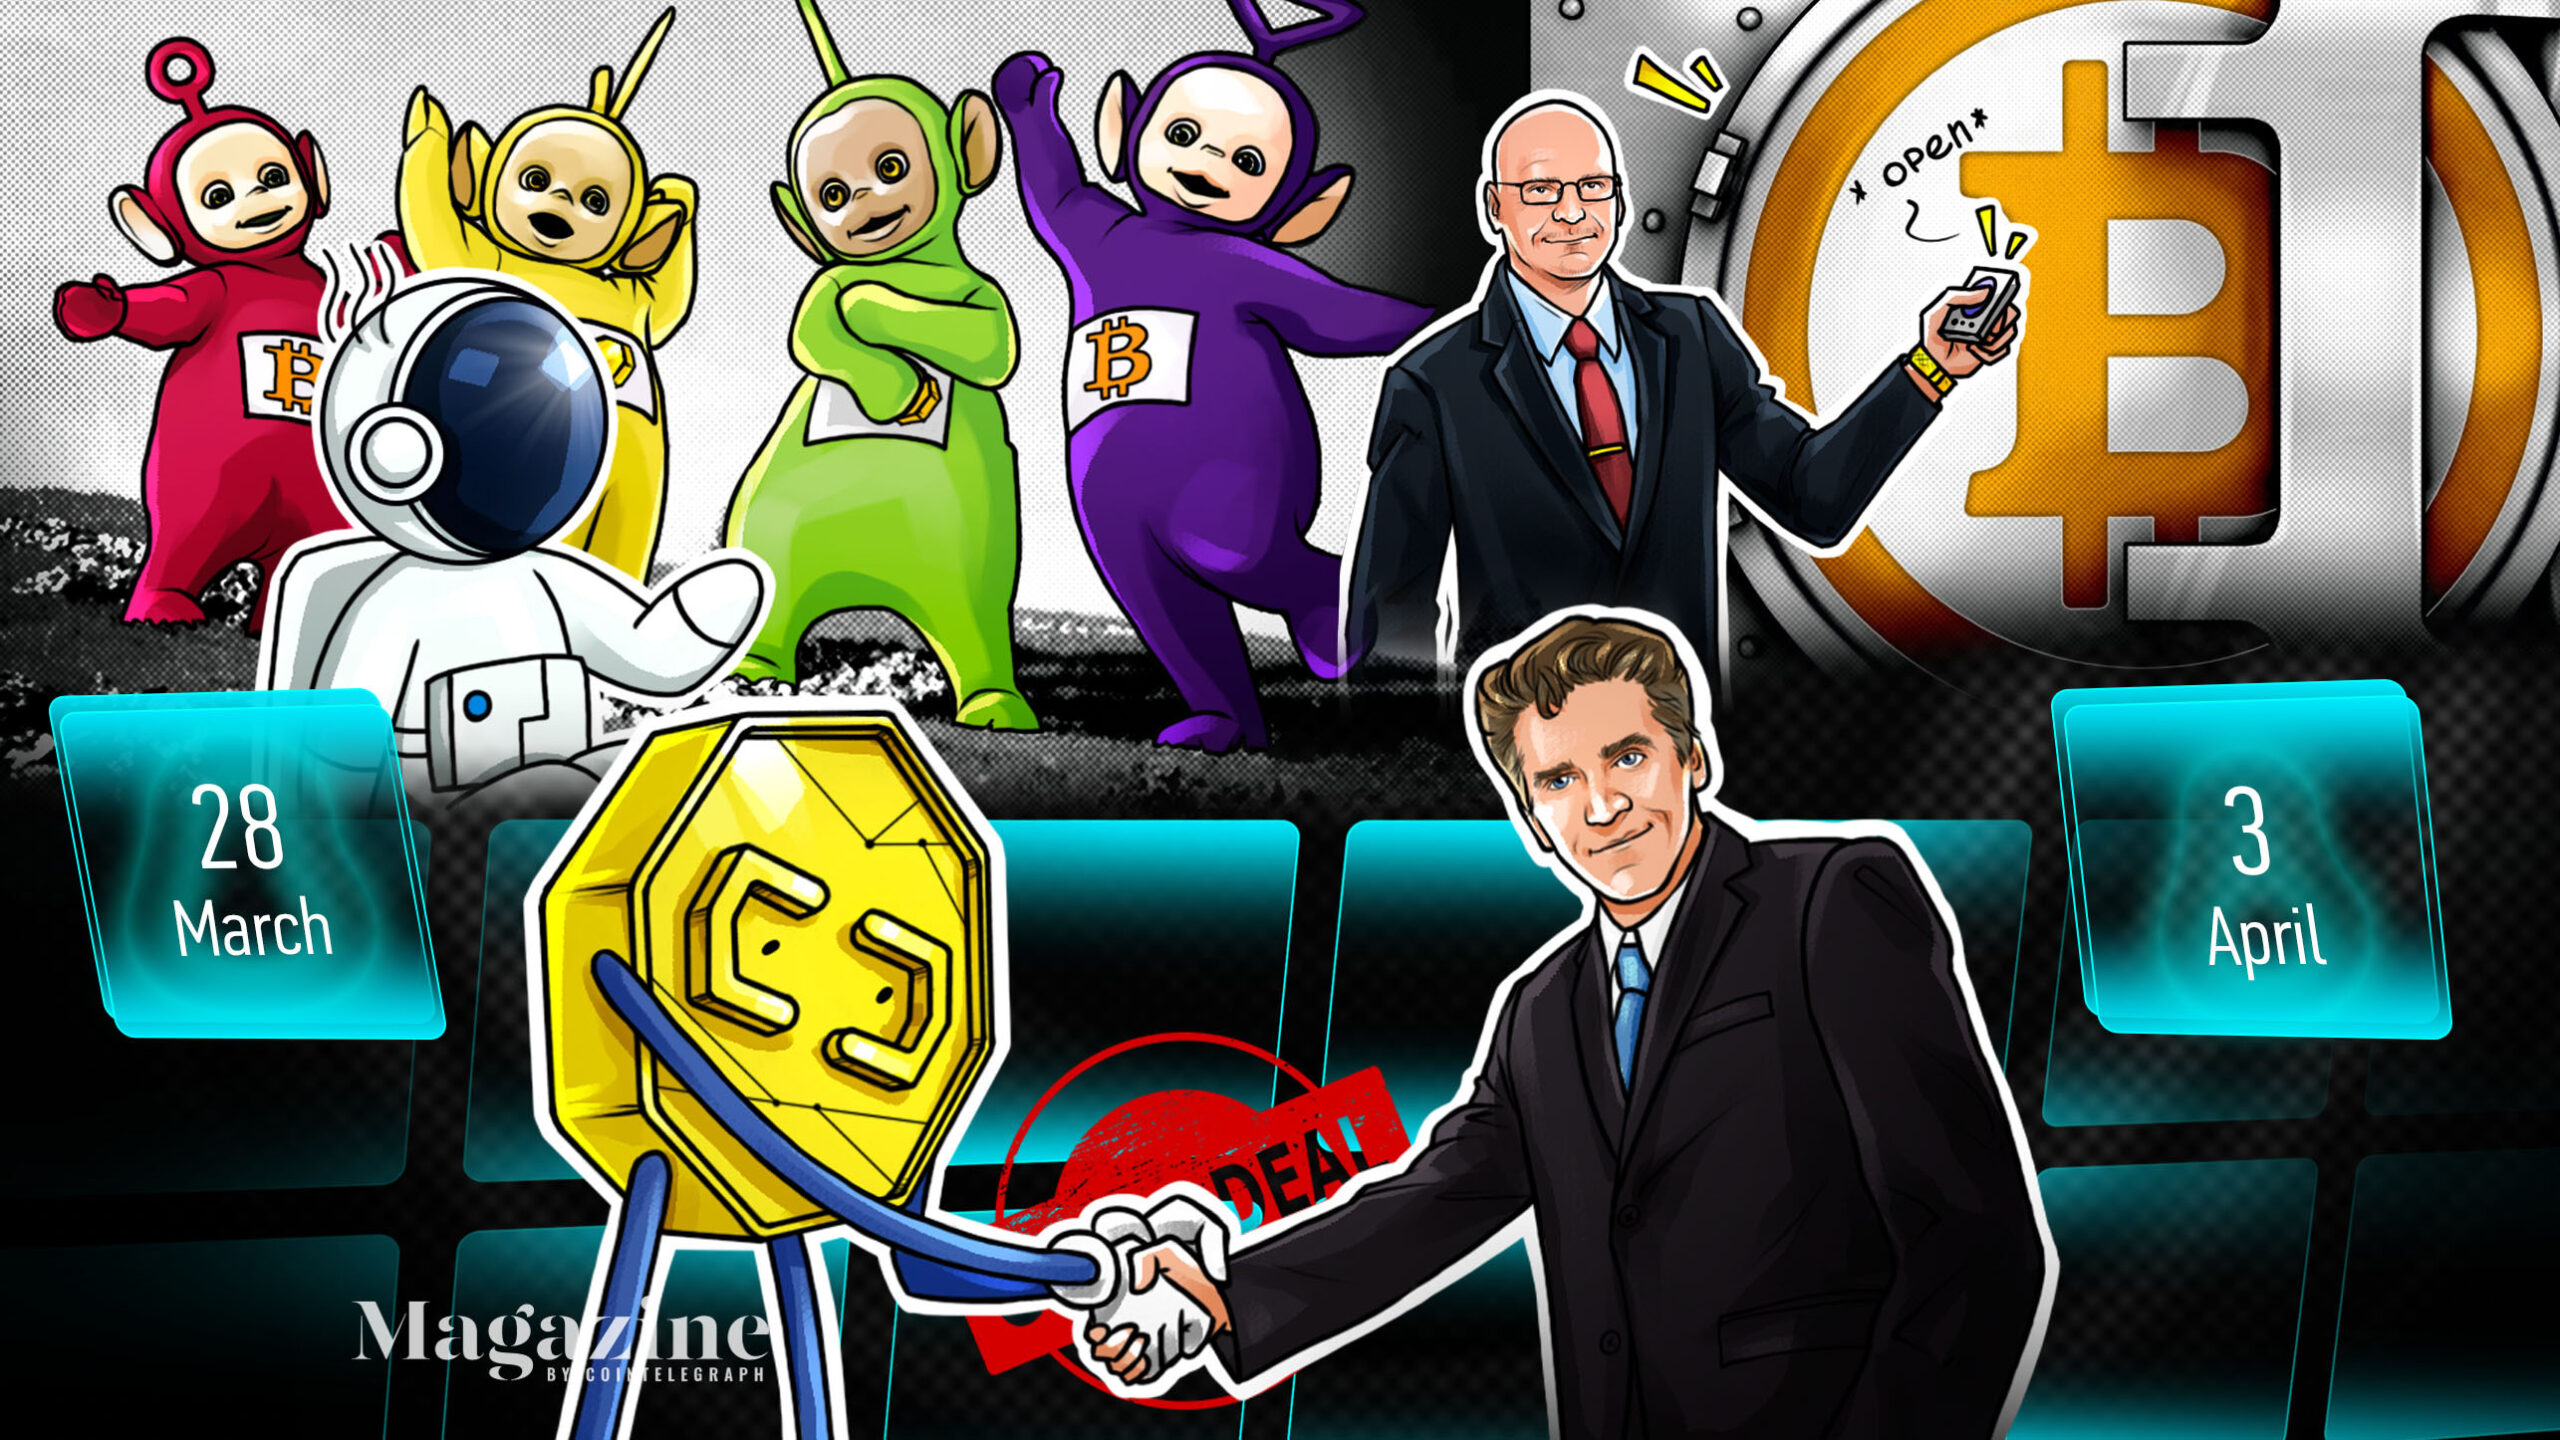 Bitcoin's comeback, XRP doubles in a week, Coinbase's big profits: Hodler's Digest, April 4–10